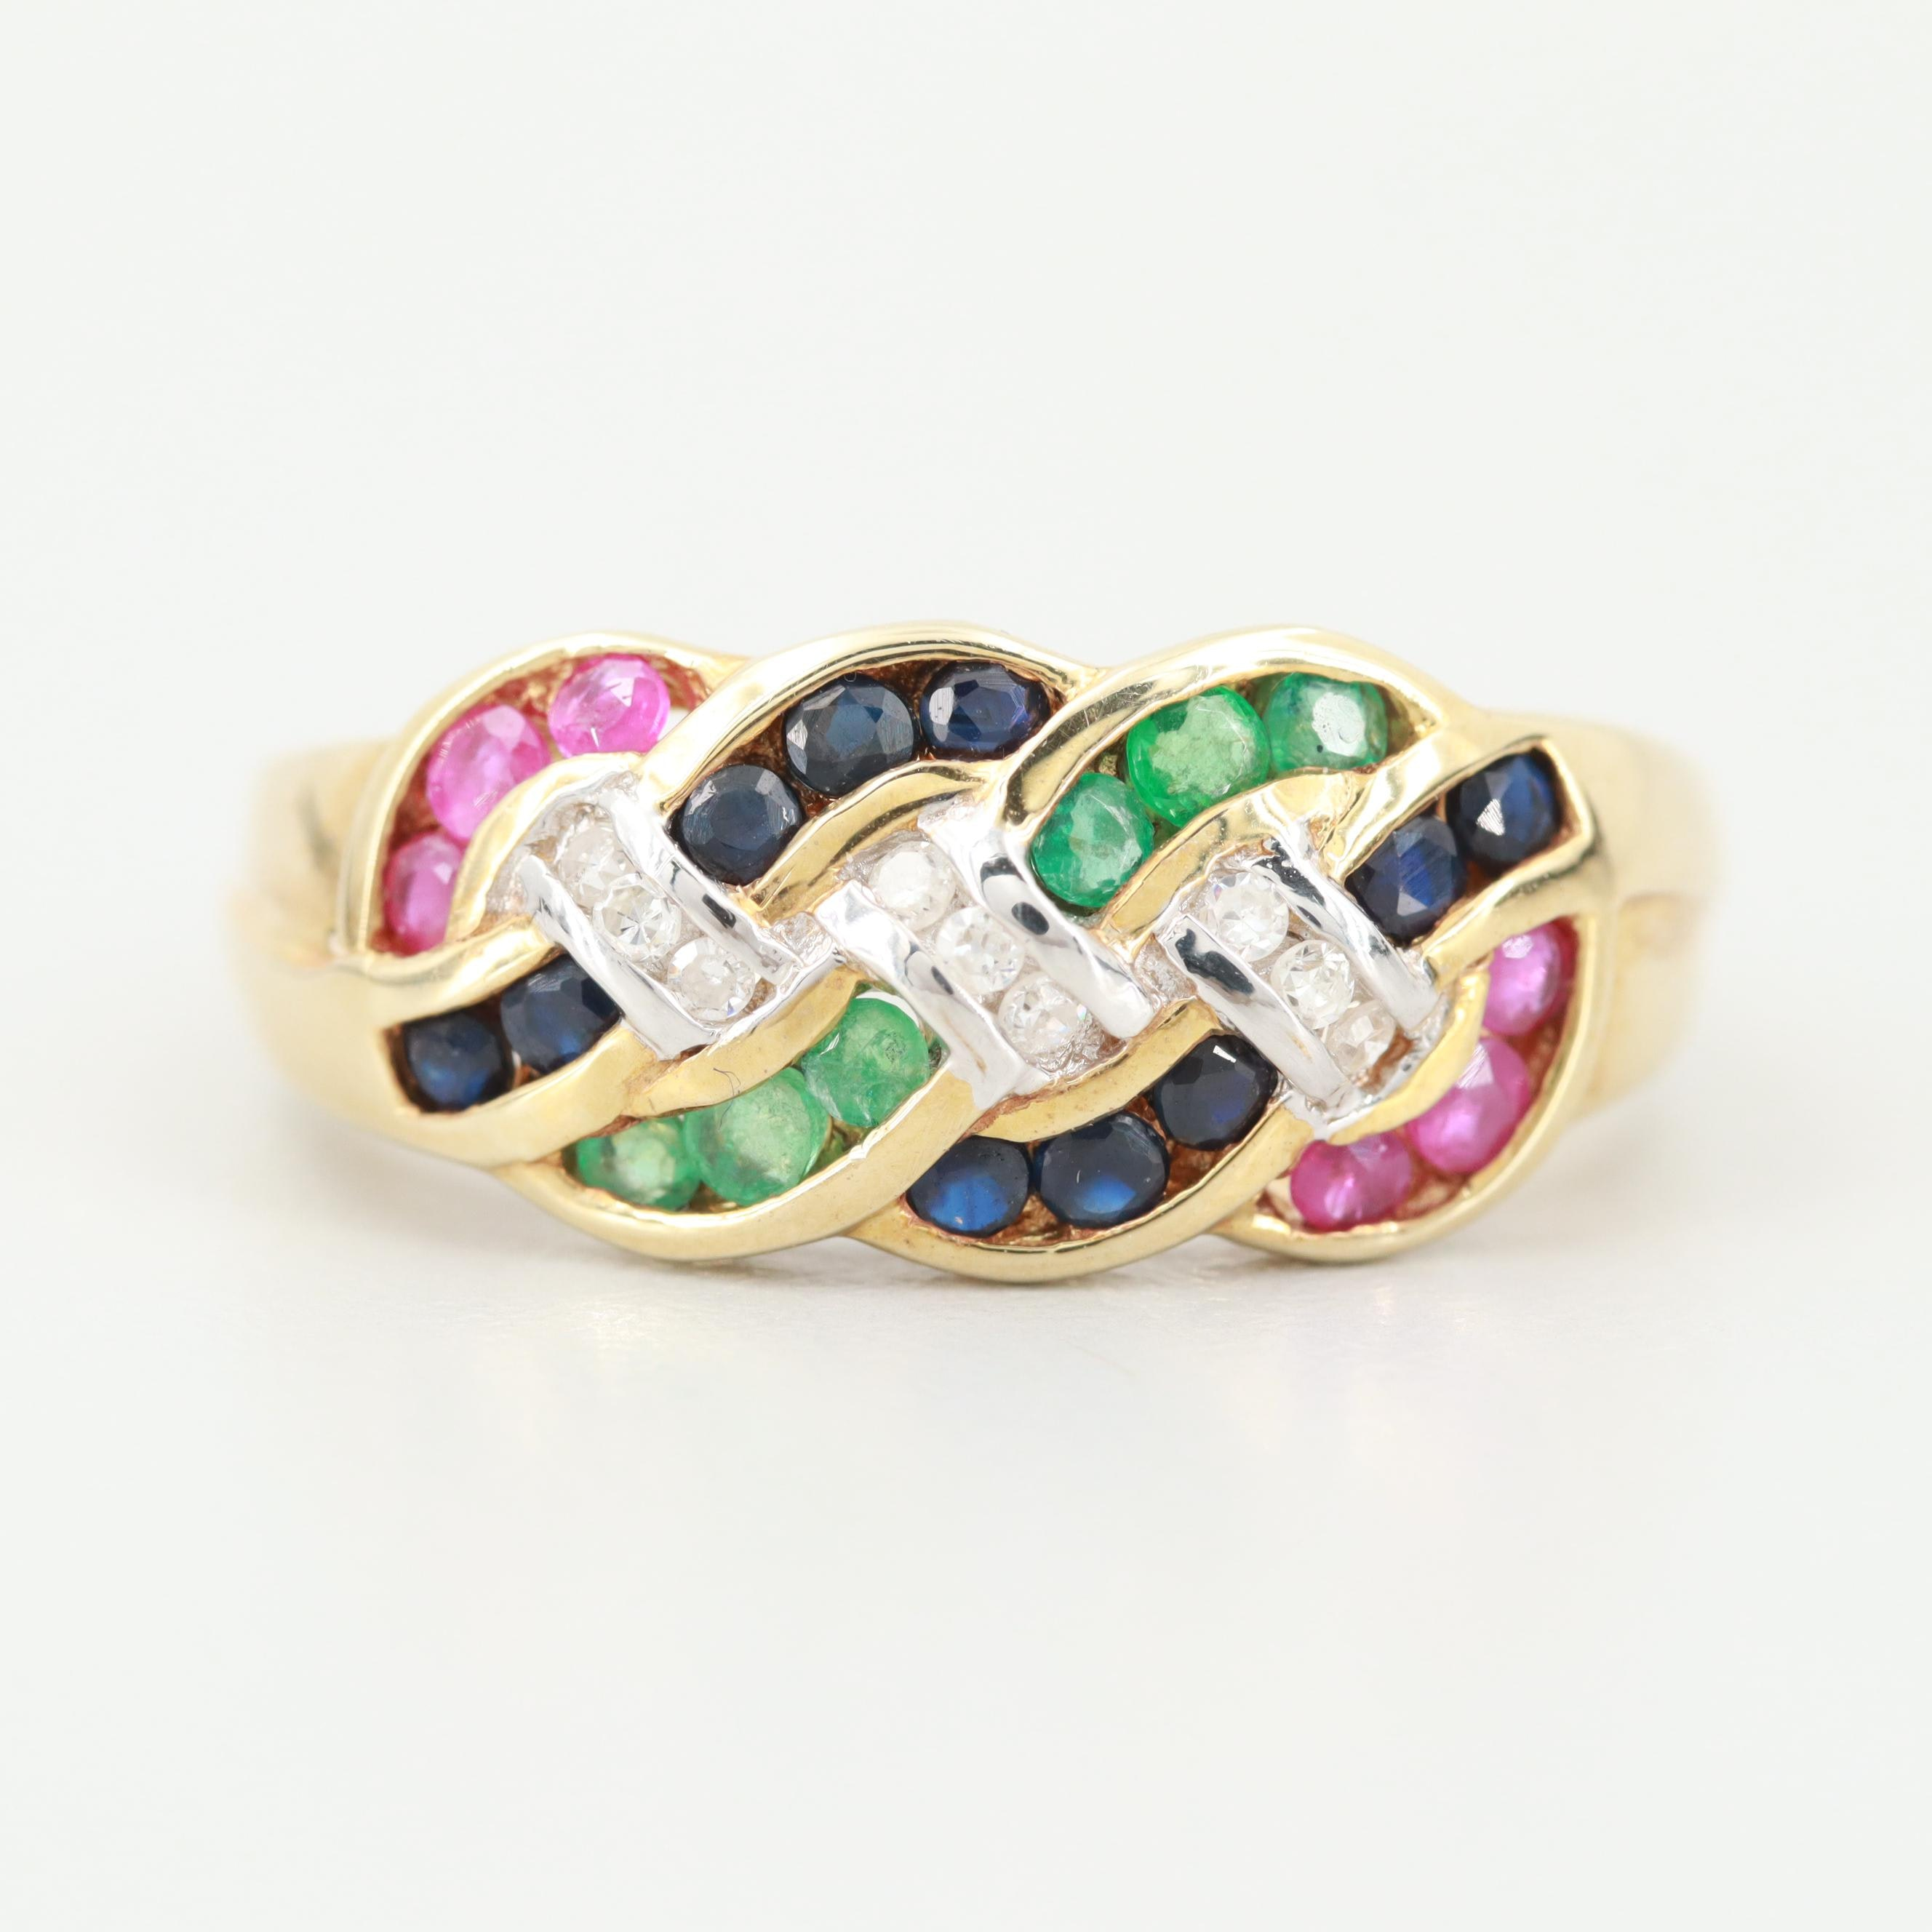 14K Yellow Gold Ruby, Sapphire, Emerald and Diamond Ring